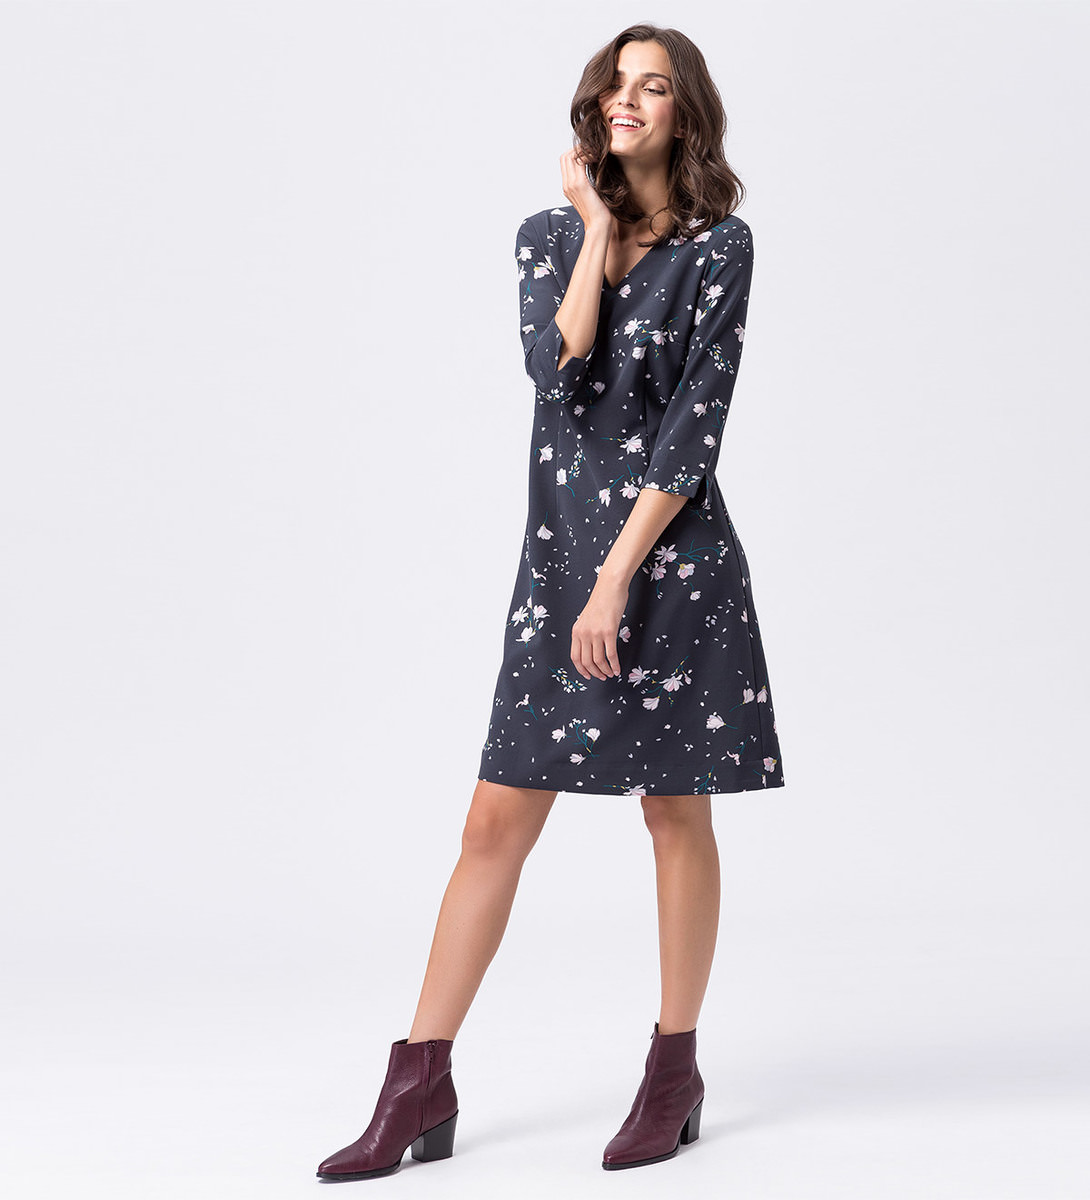 Kleid mit floralem Print in black